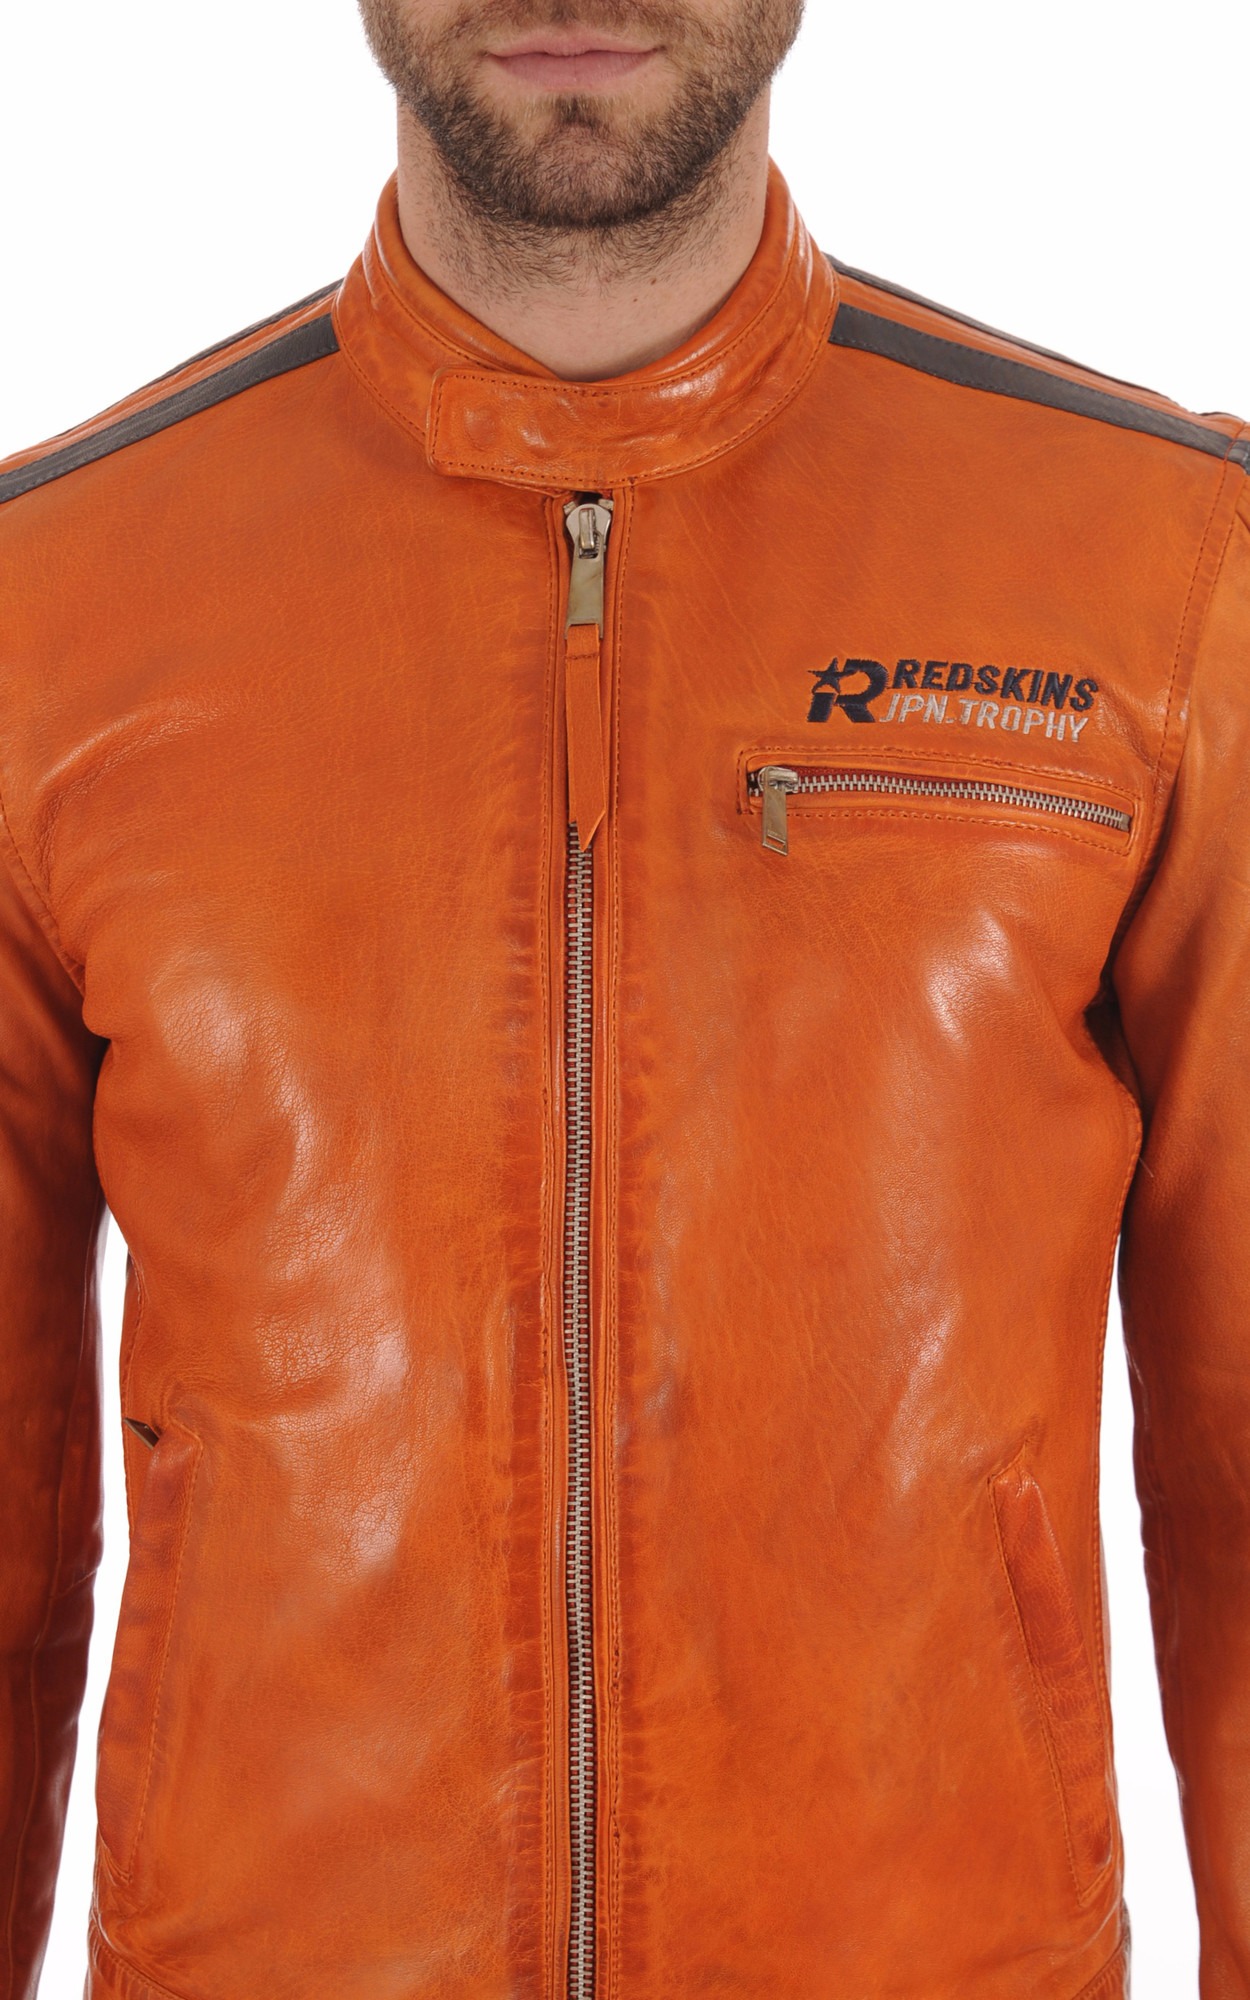 Blouson Motard Cardiff Orange Redskins